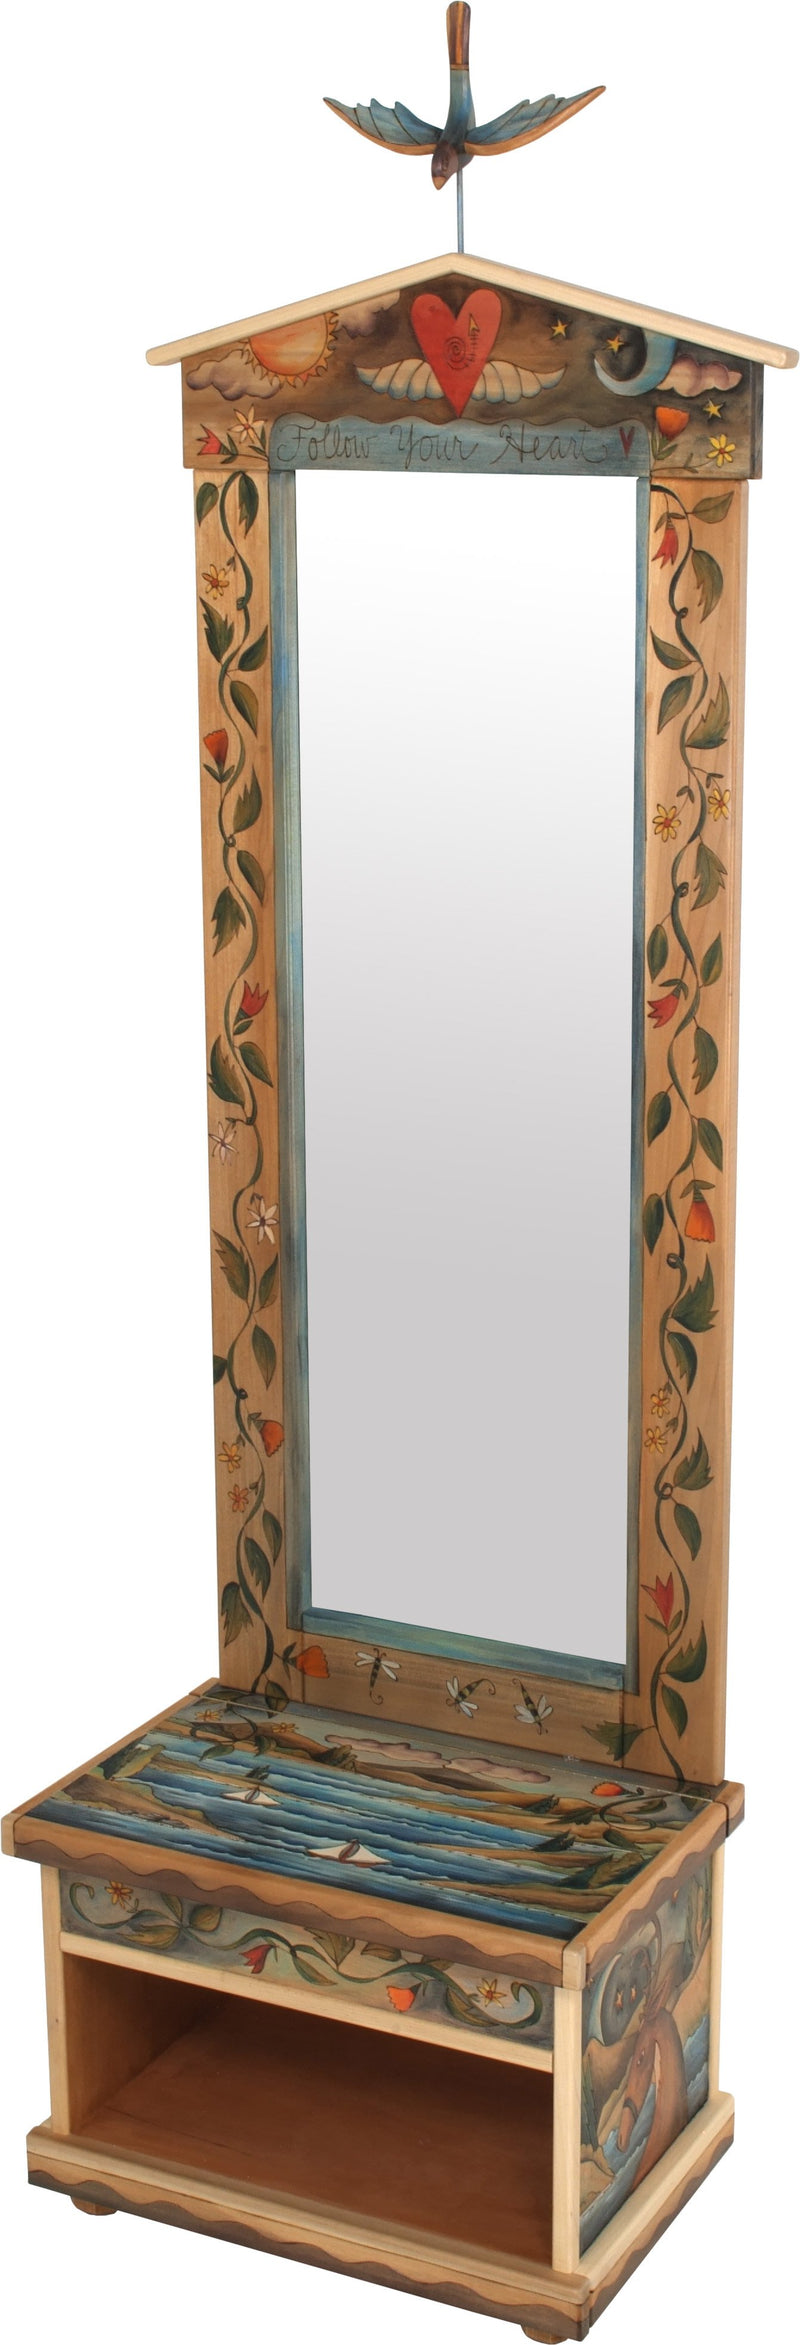 "Hall Tree –  Beautiful folk art hall tree with mirror and storage bench featuring a coastal landscape and vine motifs, ""Follow Your Heart"""